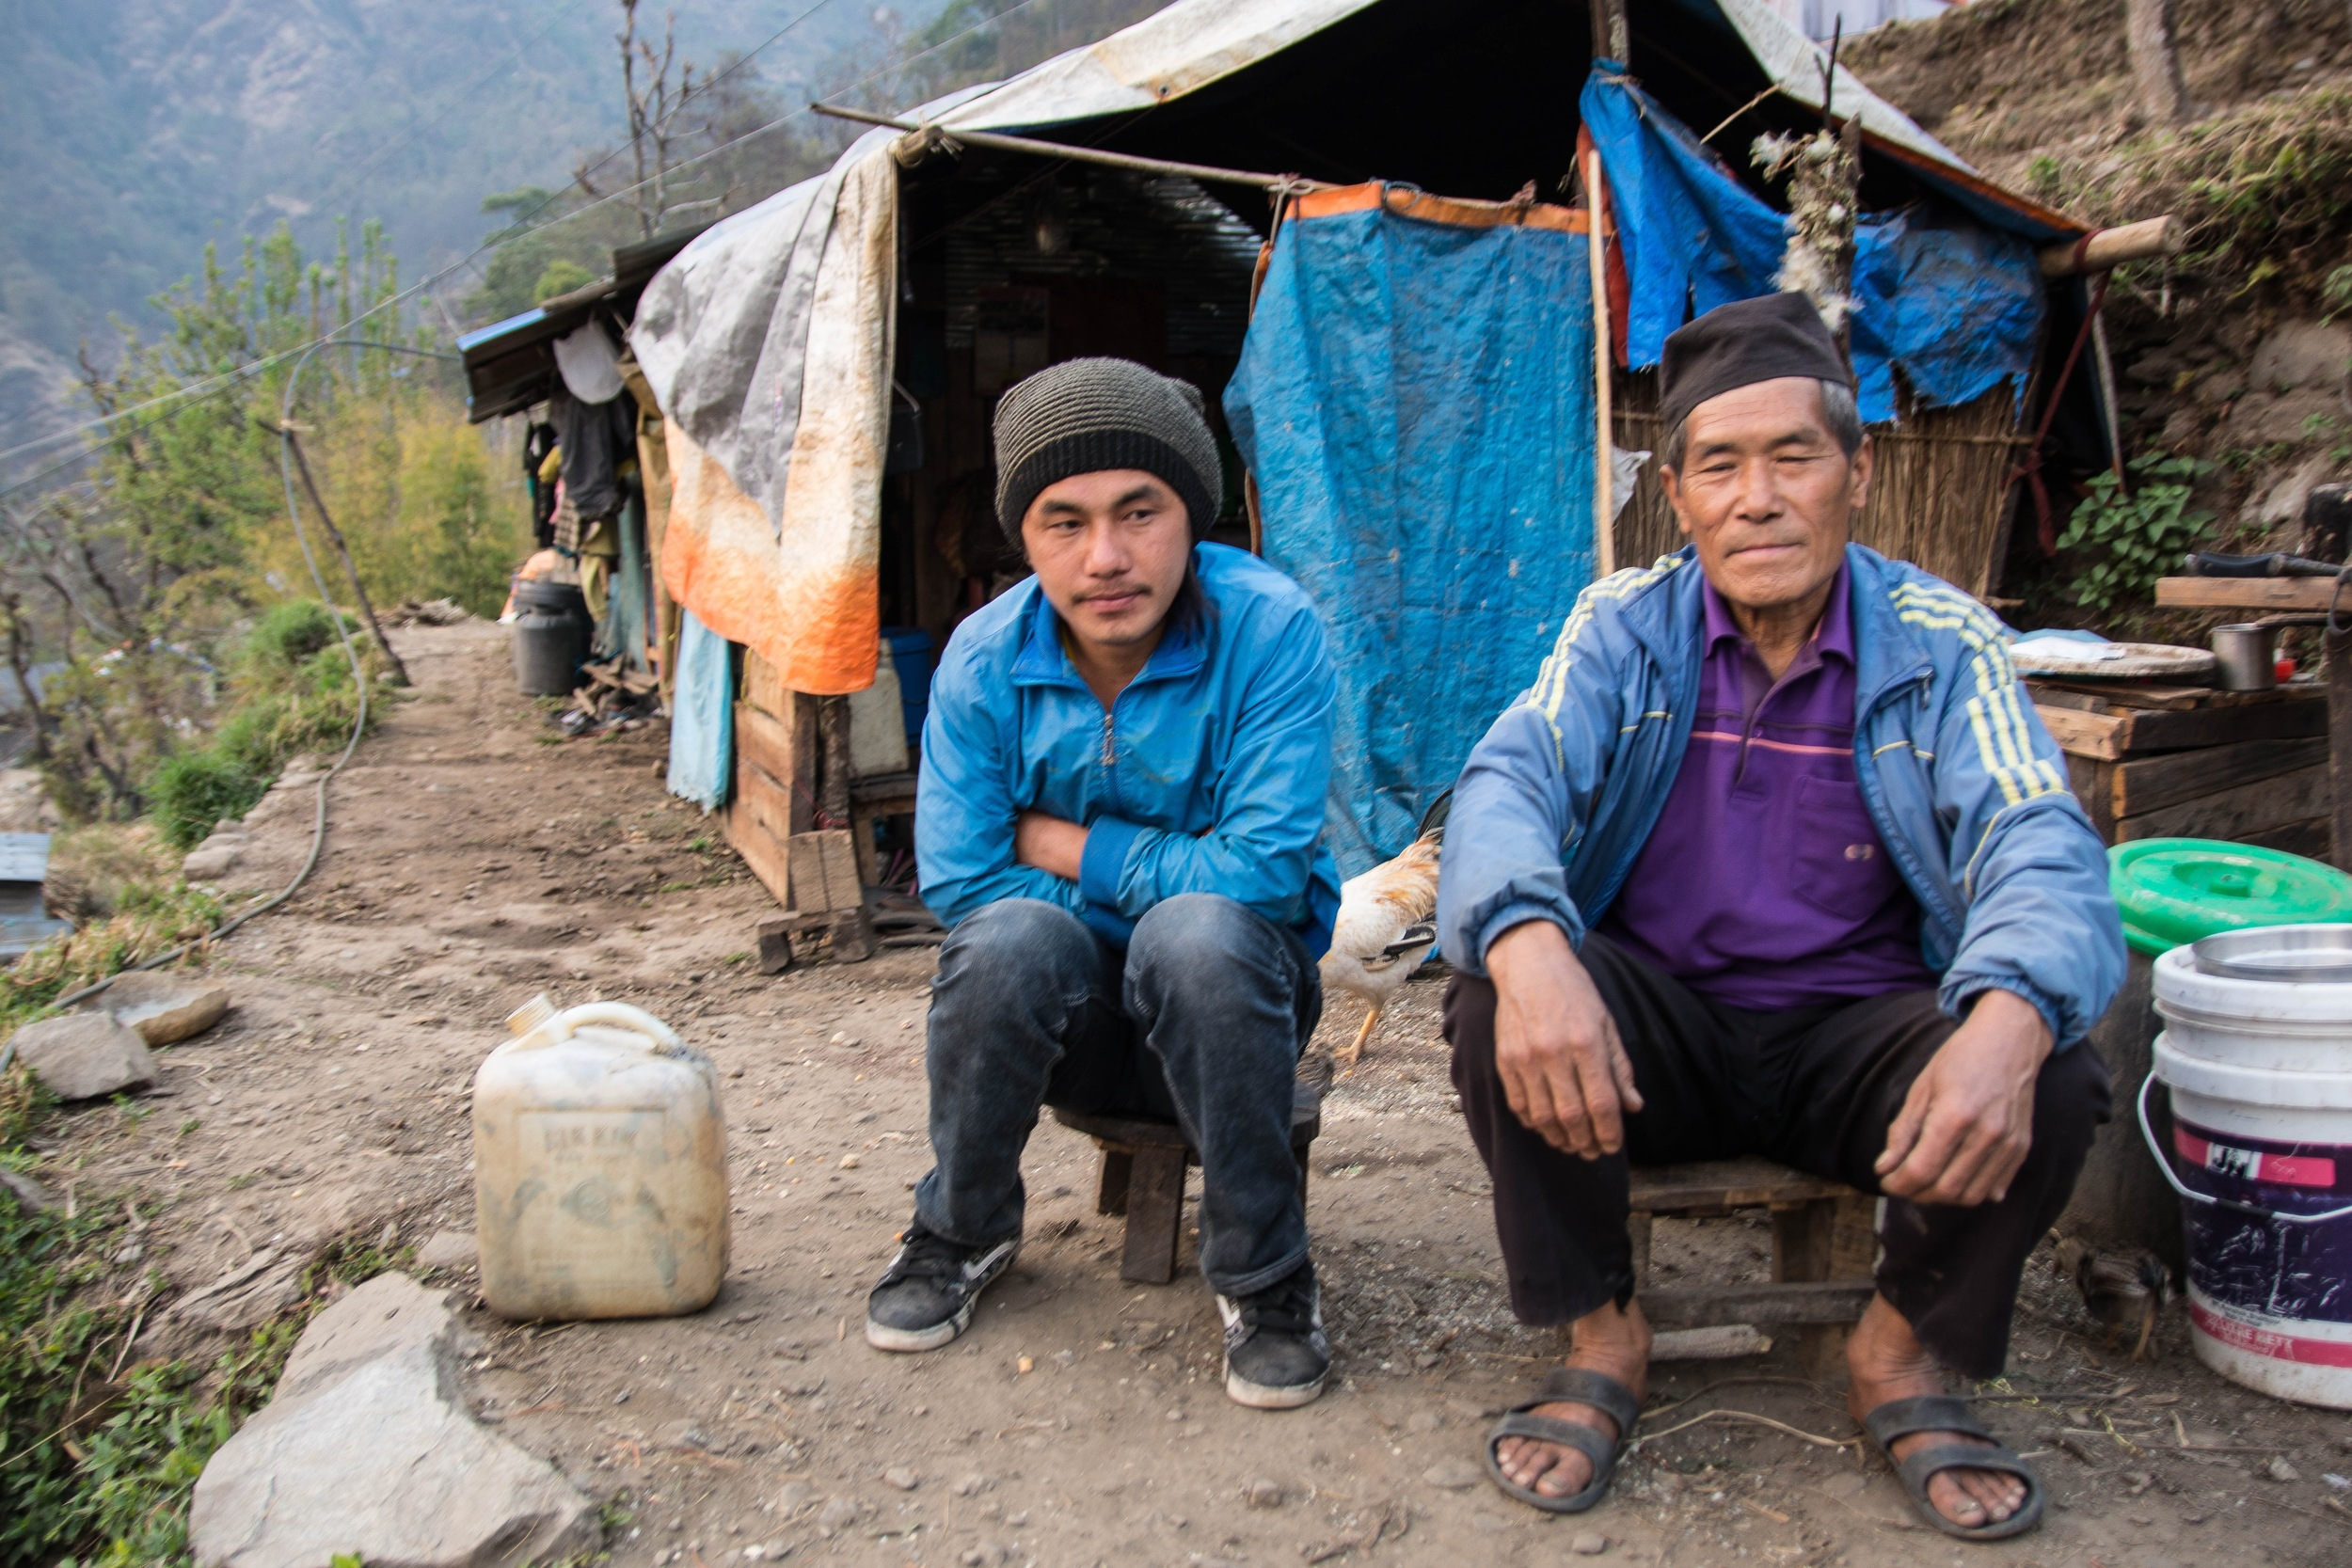 Pream Bahadur Tamang, right, and his family are still living under their tarpaulin-covered shelter. He has been watching his neighbors rebuild their houses and has decided to wait and see if their homes last through the upcoming monsoon season before he decides whether or not to rebuild his own house. His family, including his son Bir, left, disagree with his decision - Photo by Mark Morrison.